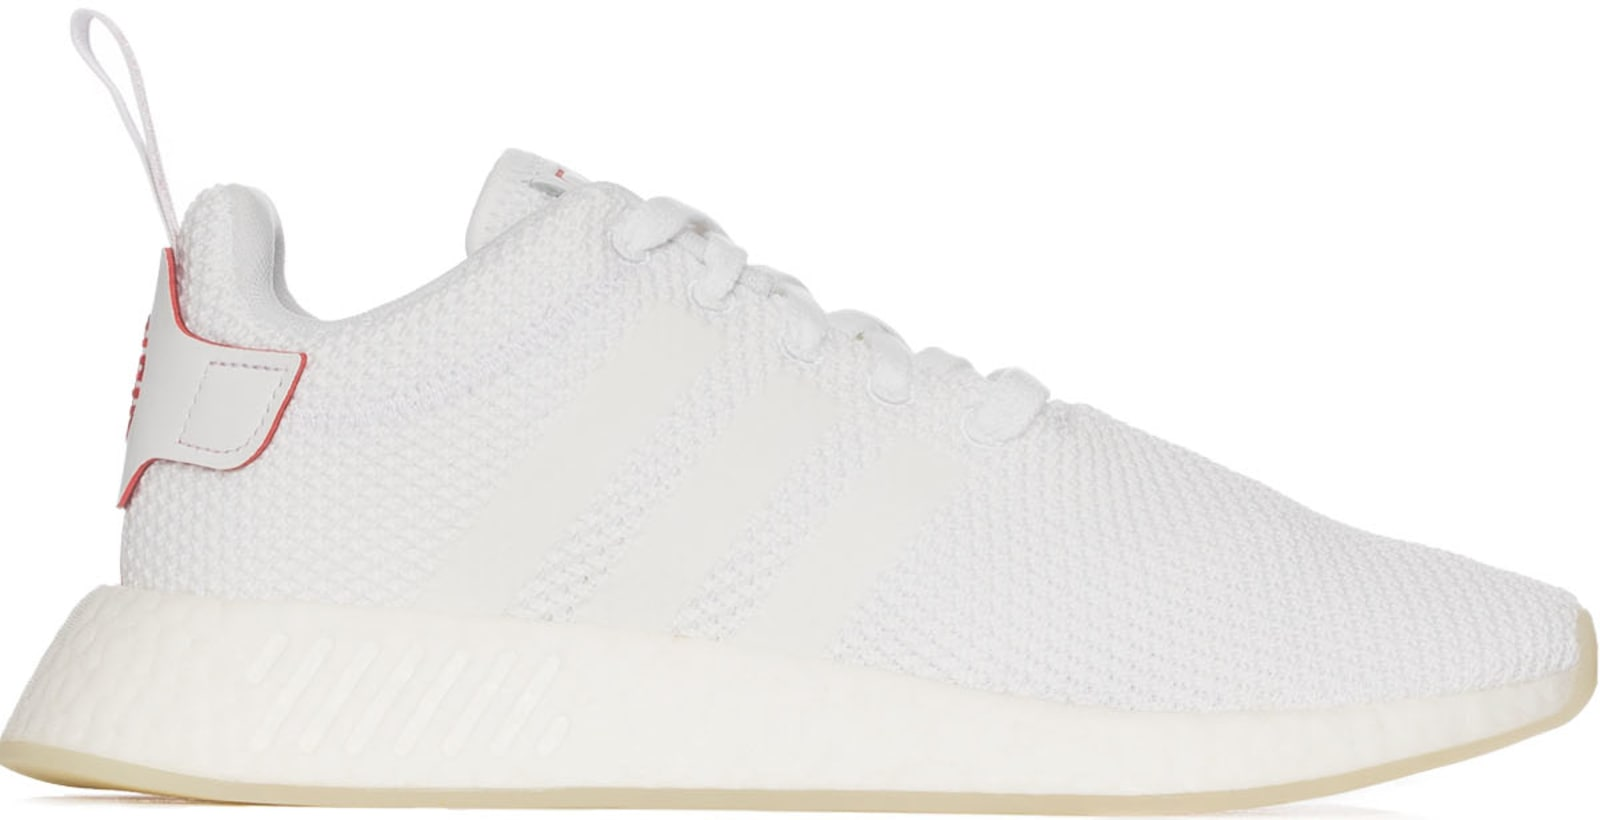 newest c69ce 6af5b adidas Originals - NMD R2 Chinese New Year - Running White/Running  White/Scarlet Red